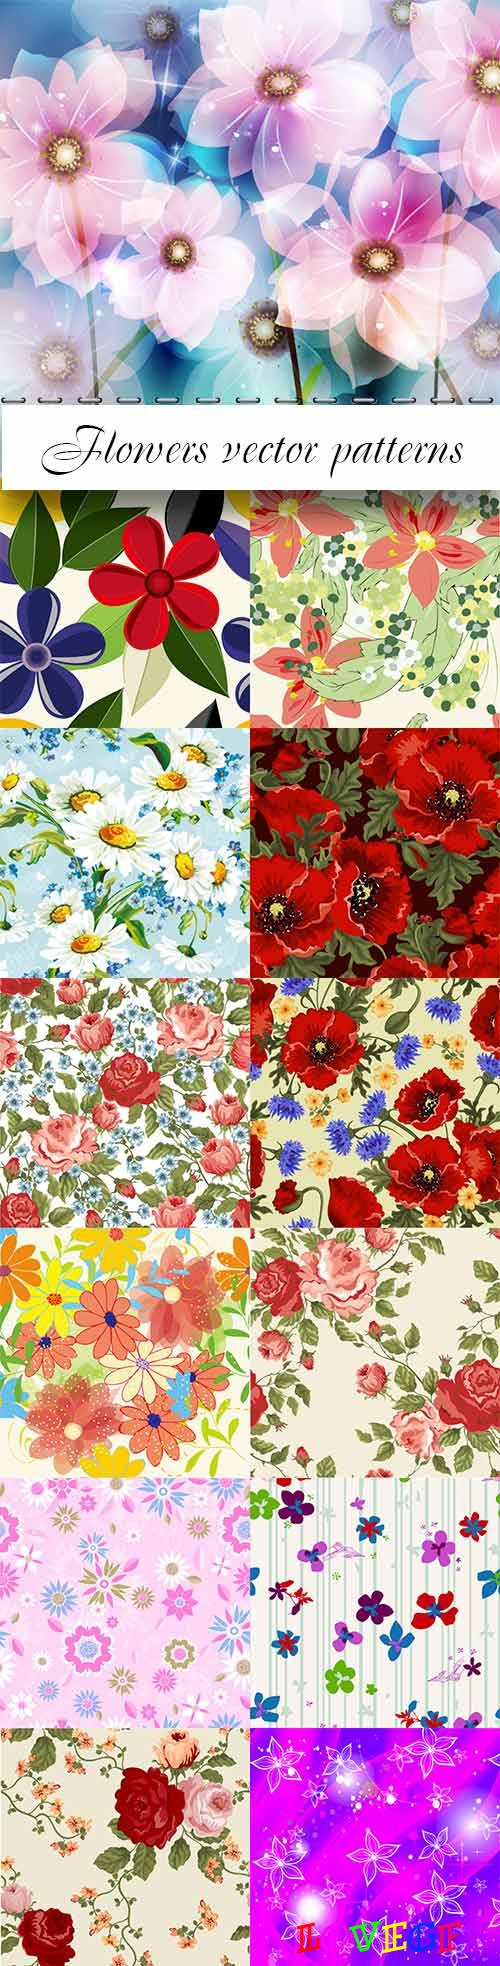 Flowers vector patterns